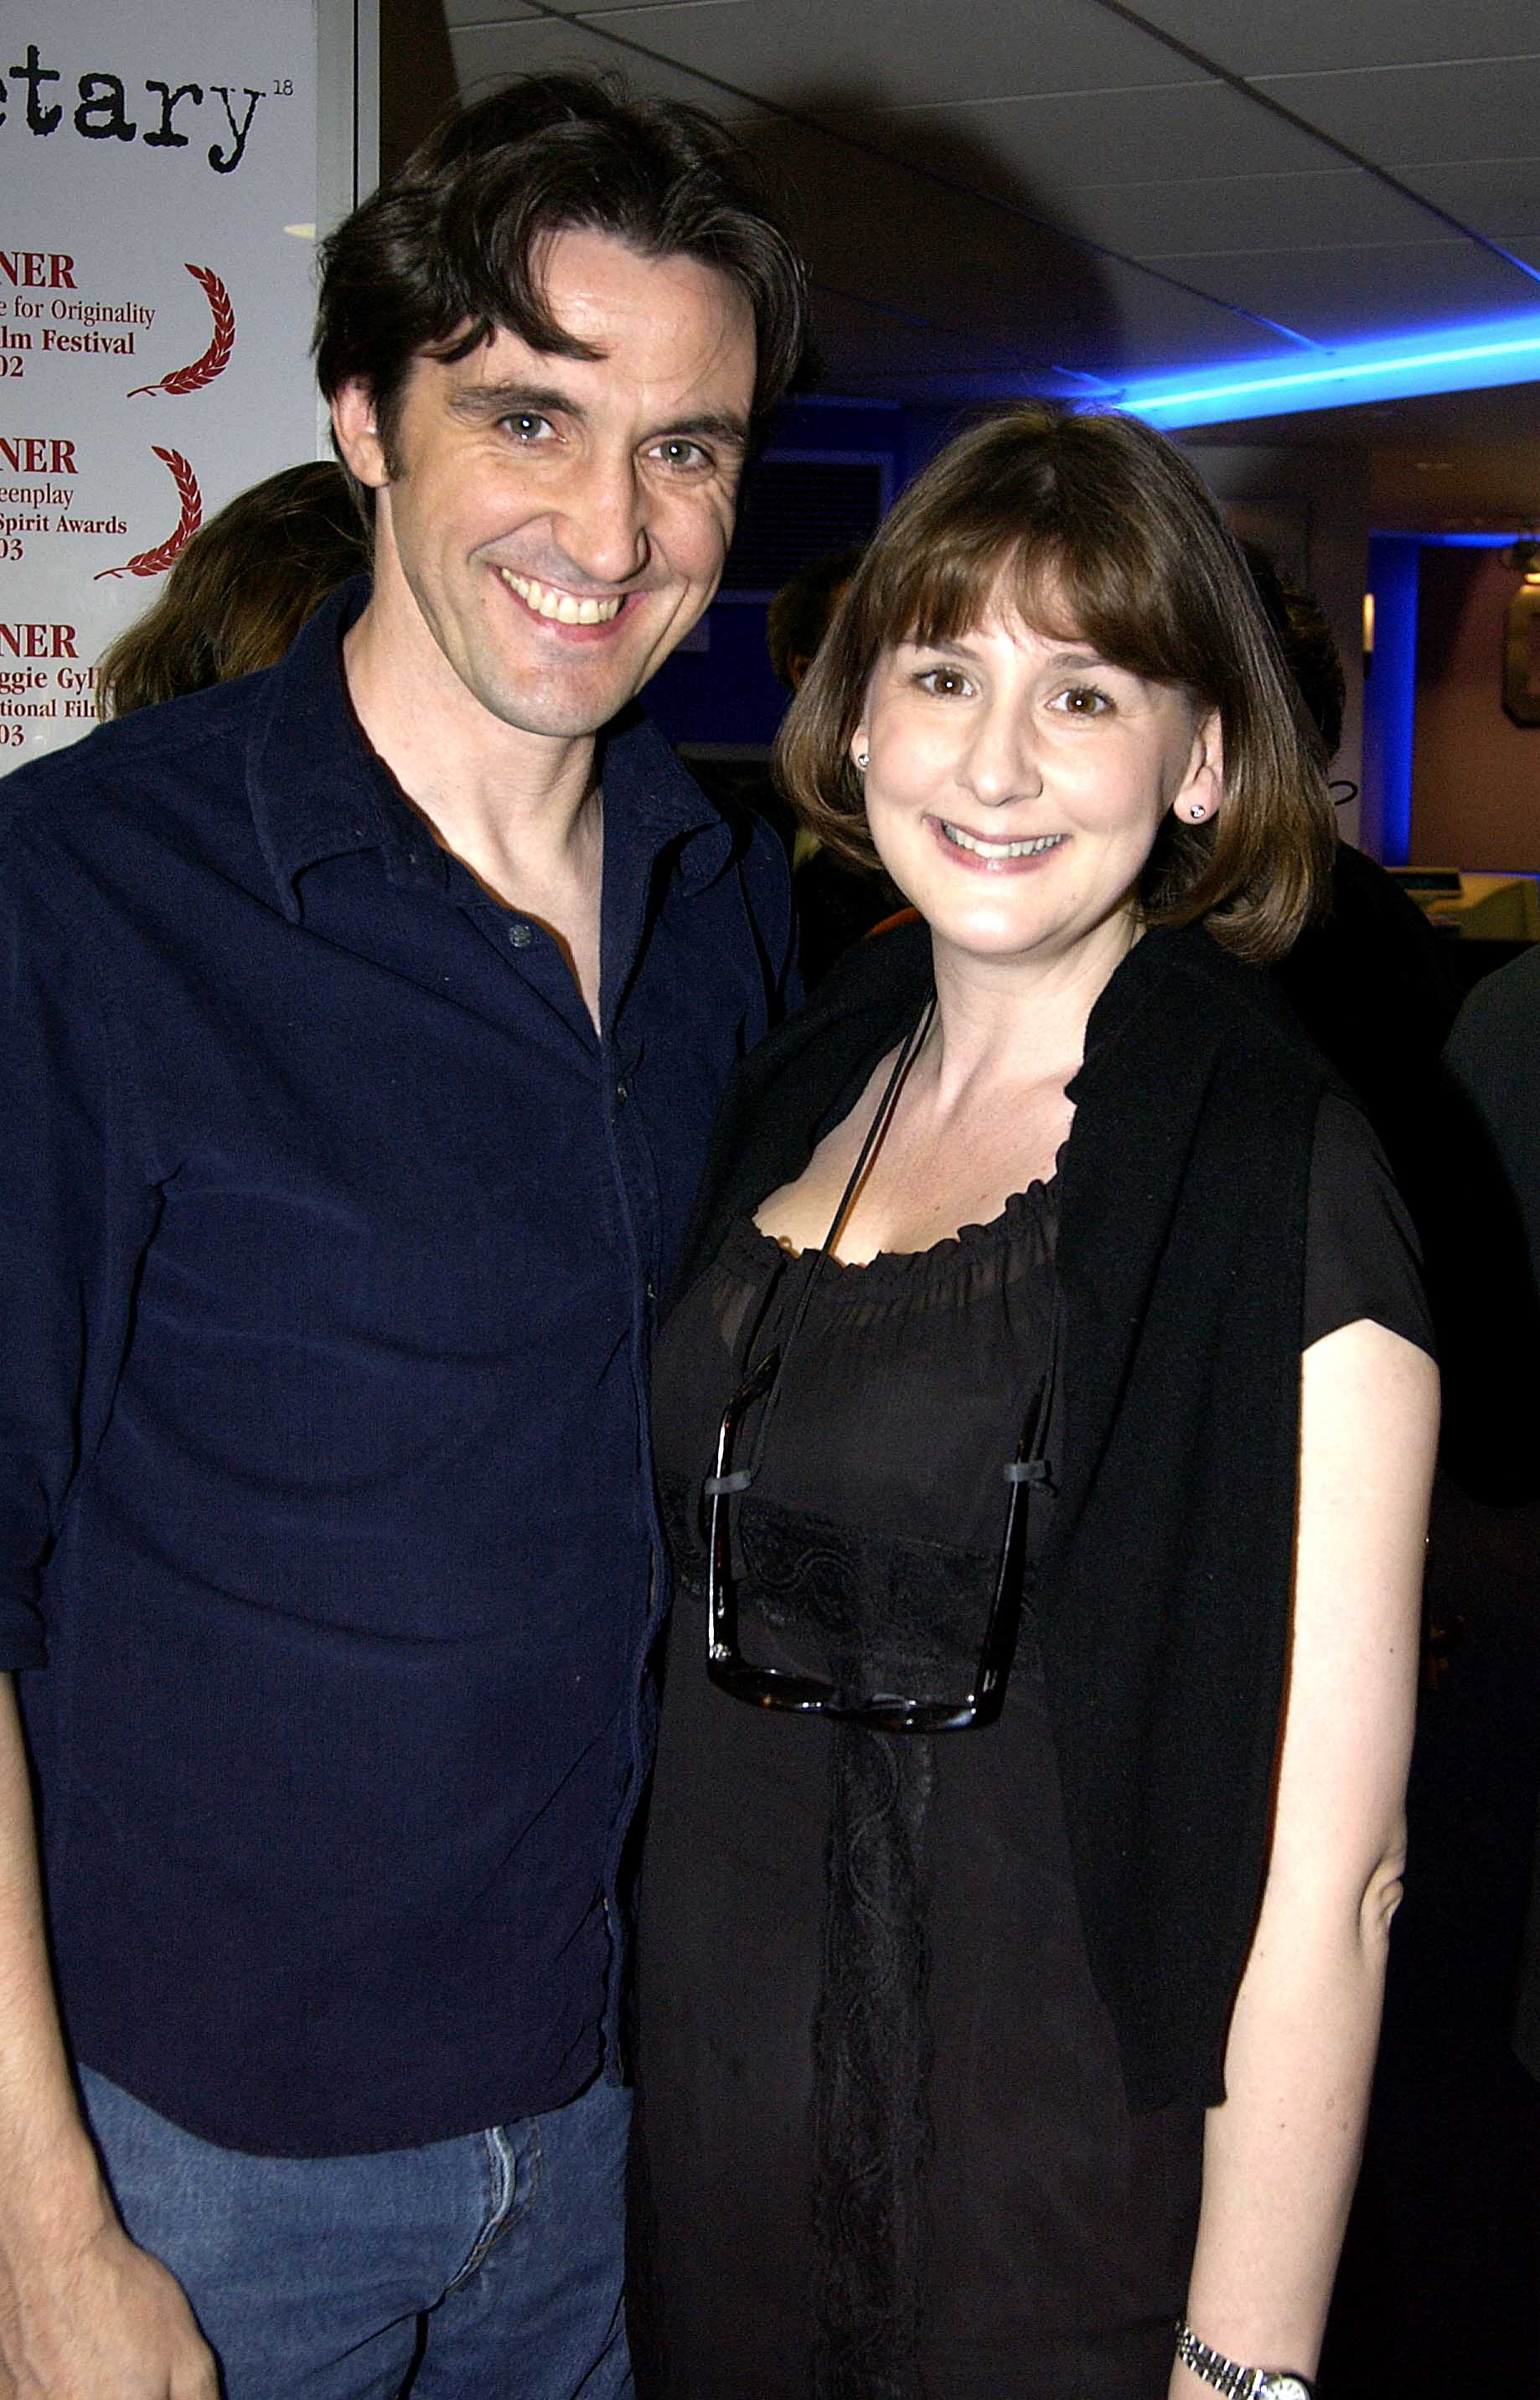 Stephen McGann with his wife and creator of Call the Midwife, Heidi Thomas